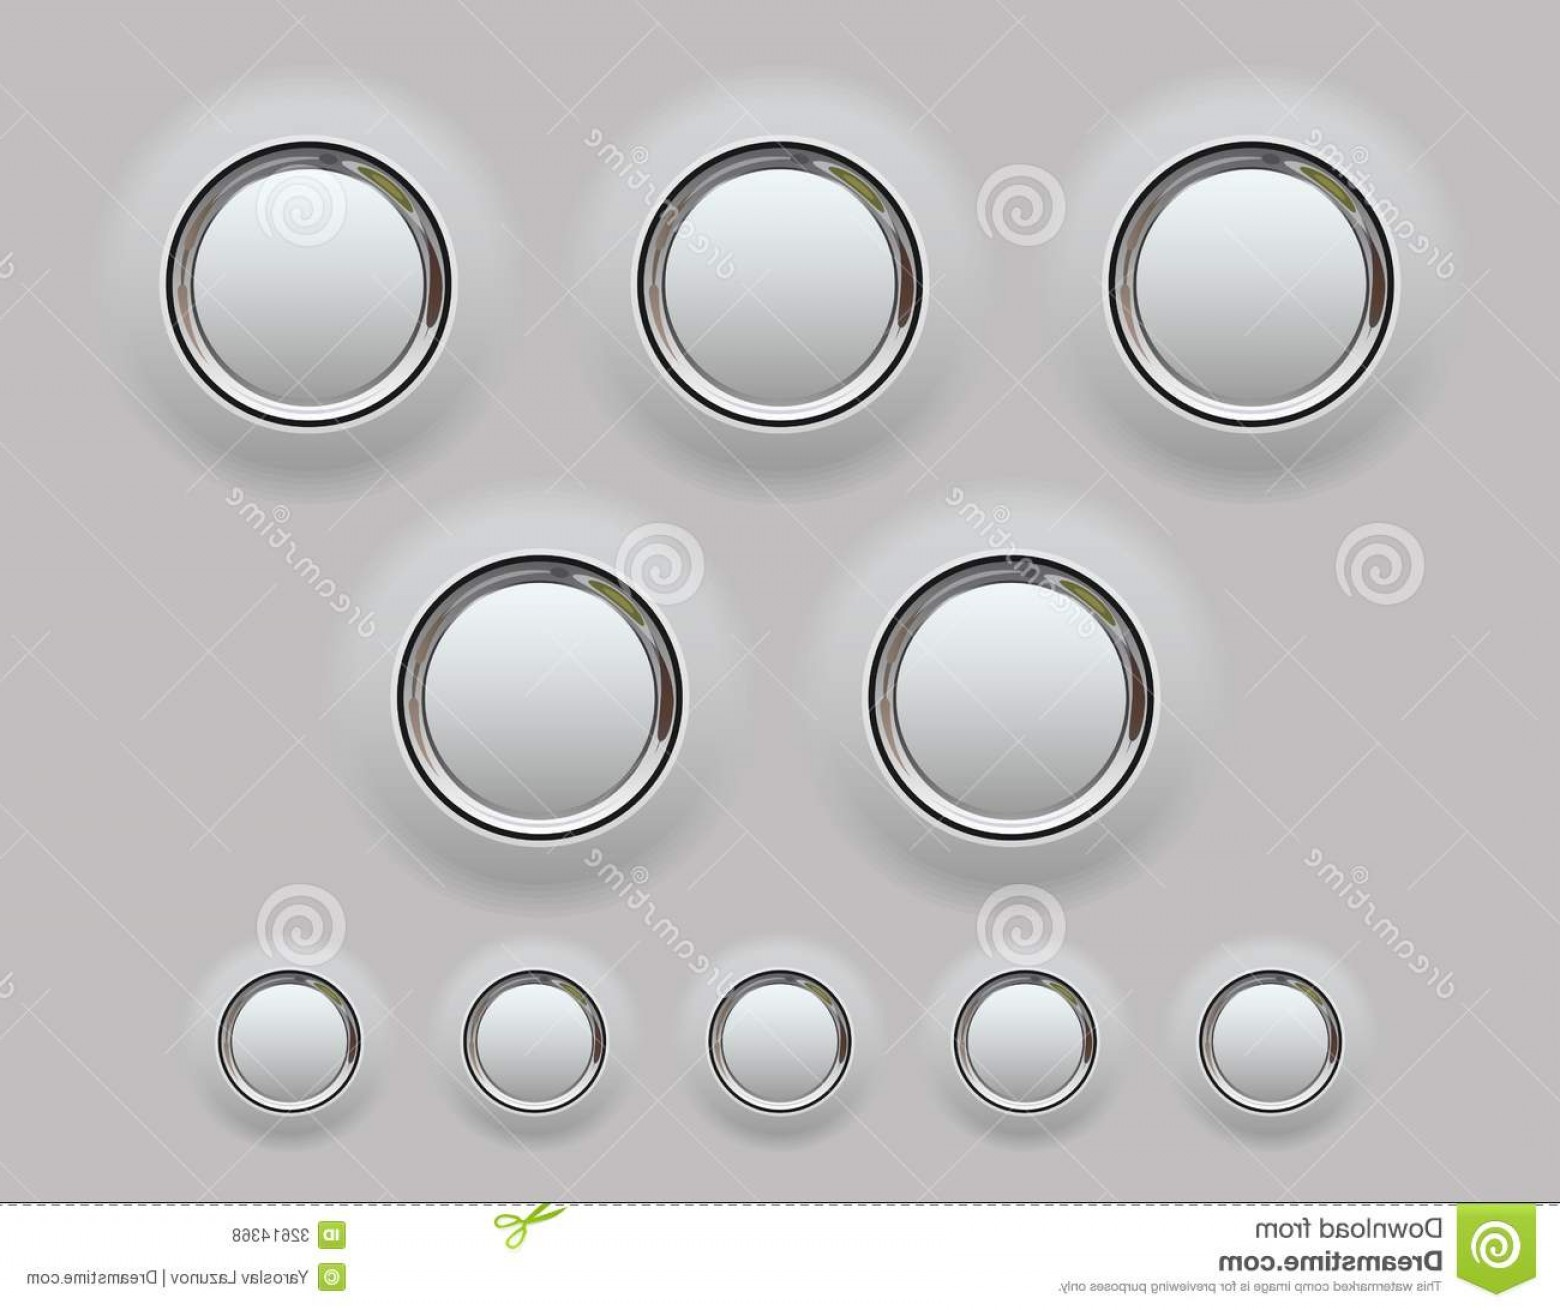 Metal Button Vector: Royalty Free Stock Photos Web Metal Button Vector Illustration Internet Buttons Your Designs Presentation Image